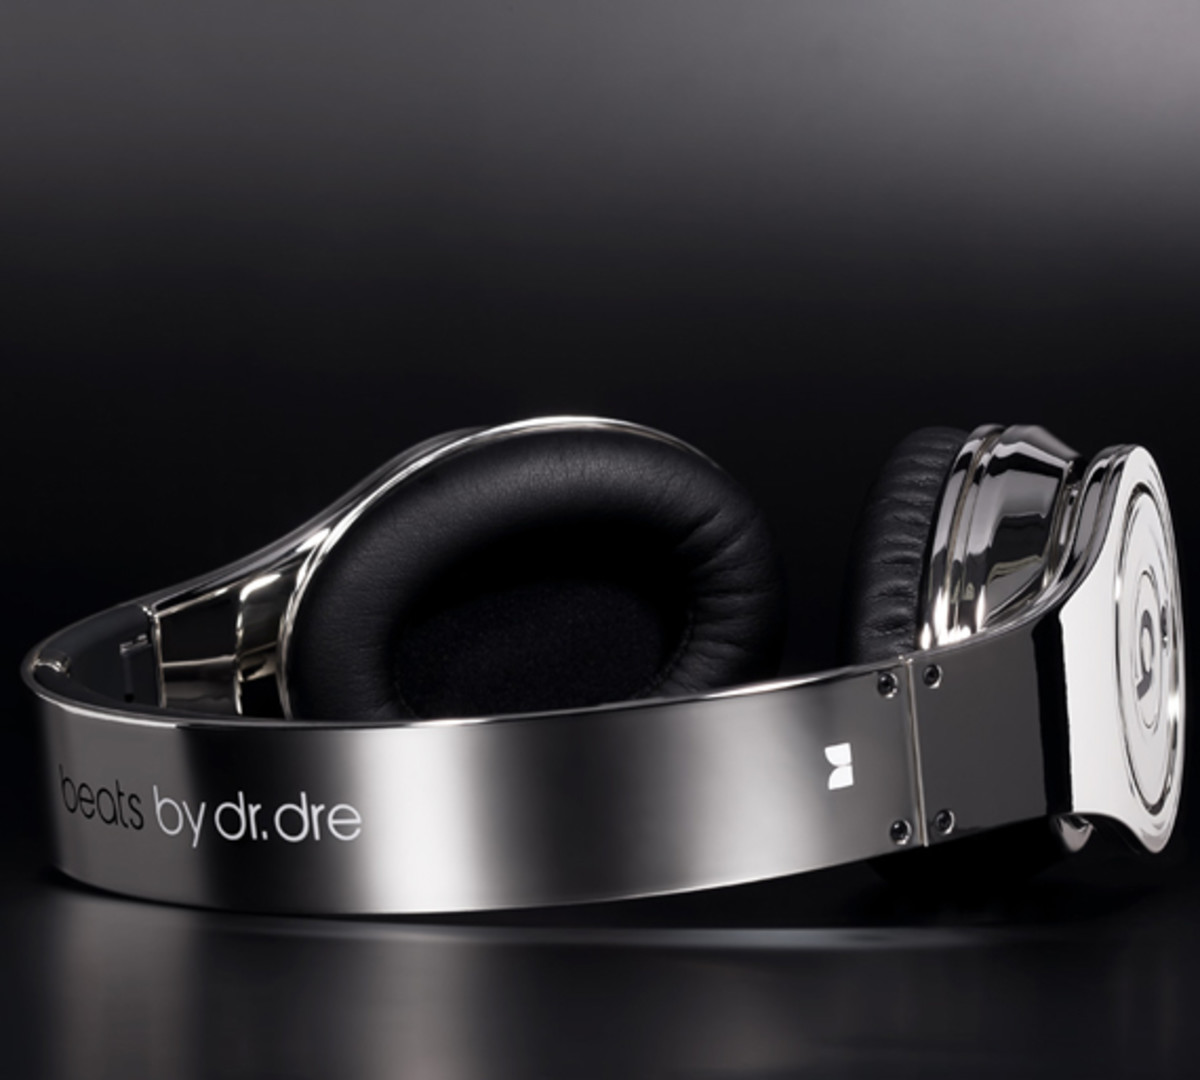 colorware-beats-by-dr-dre-chrome-02